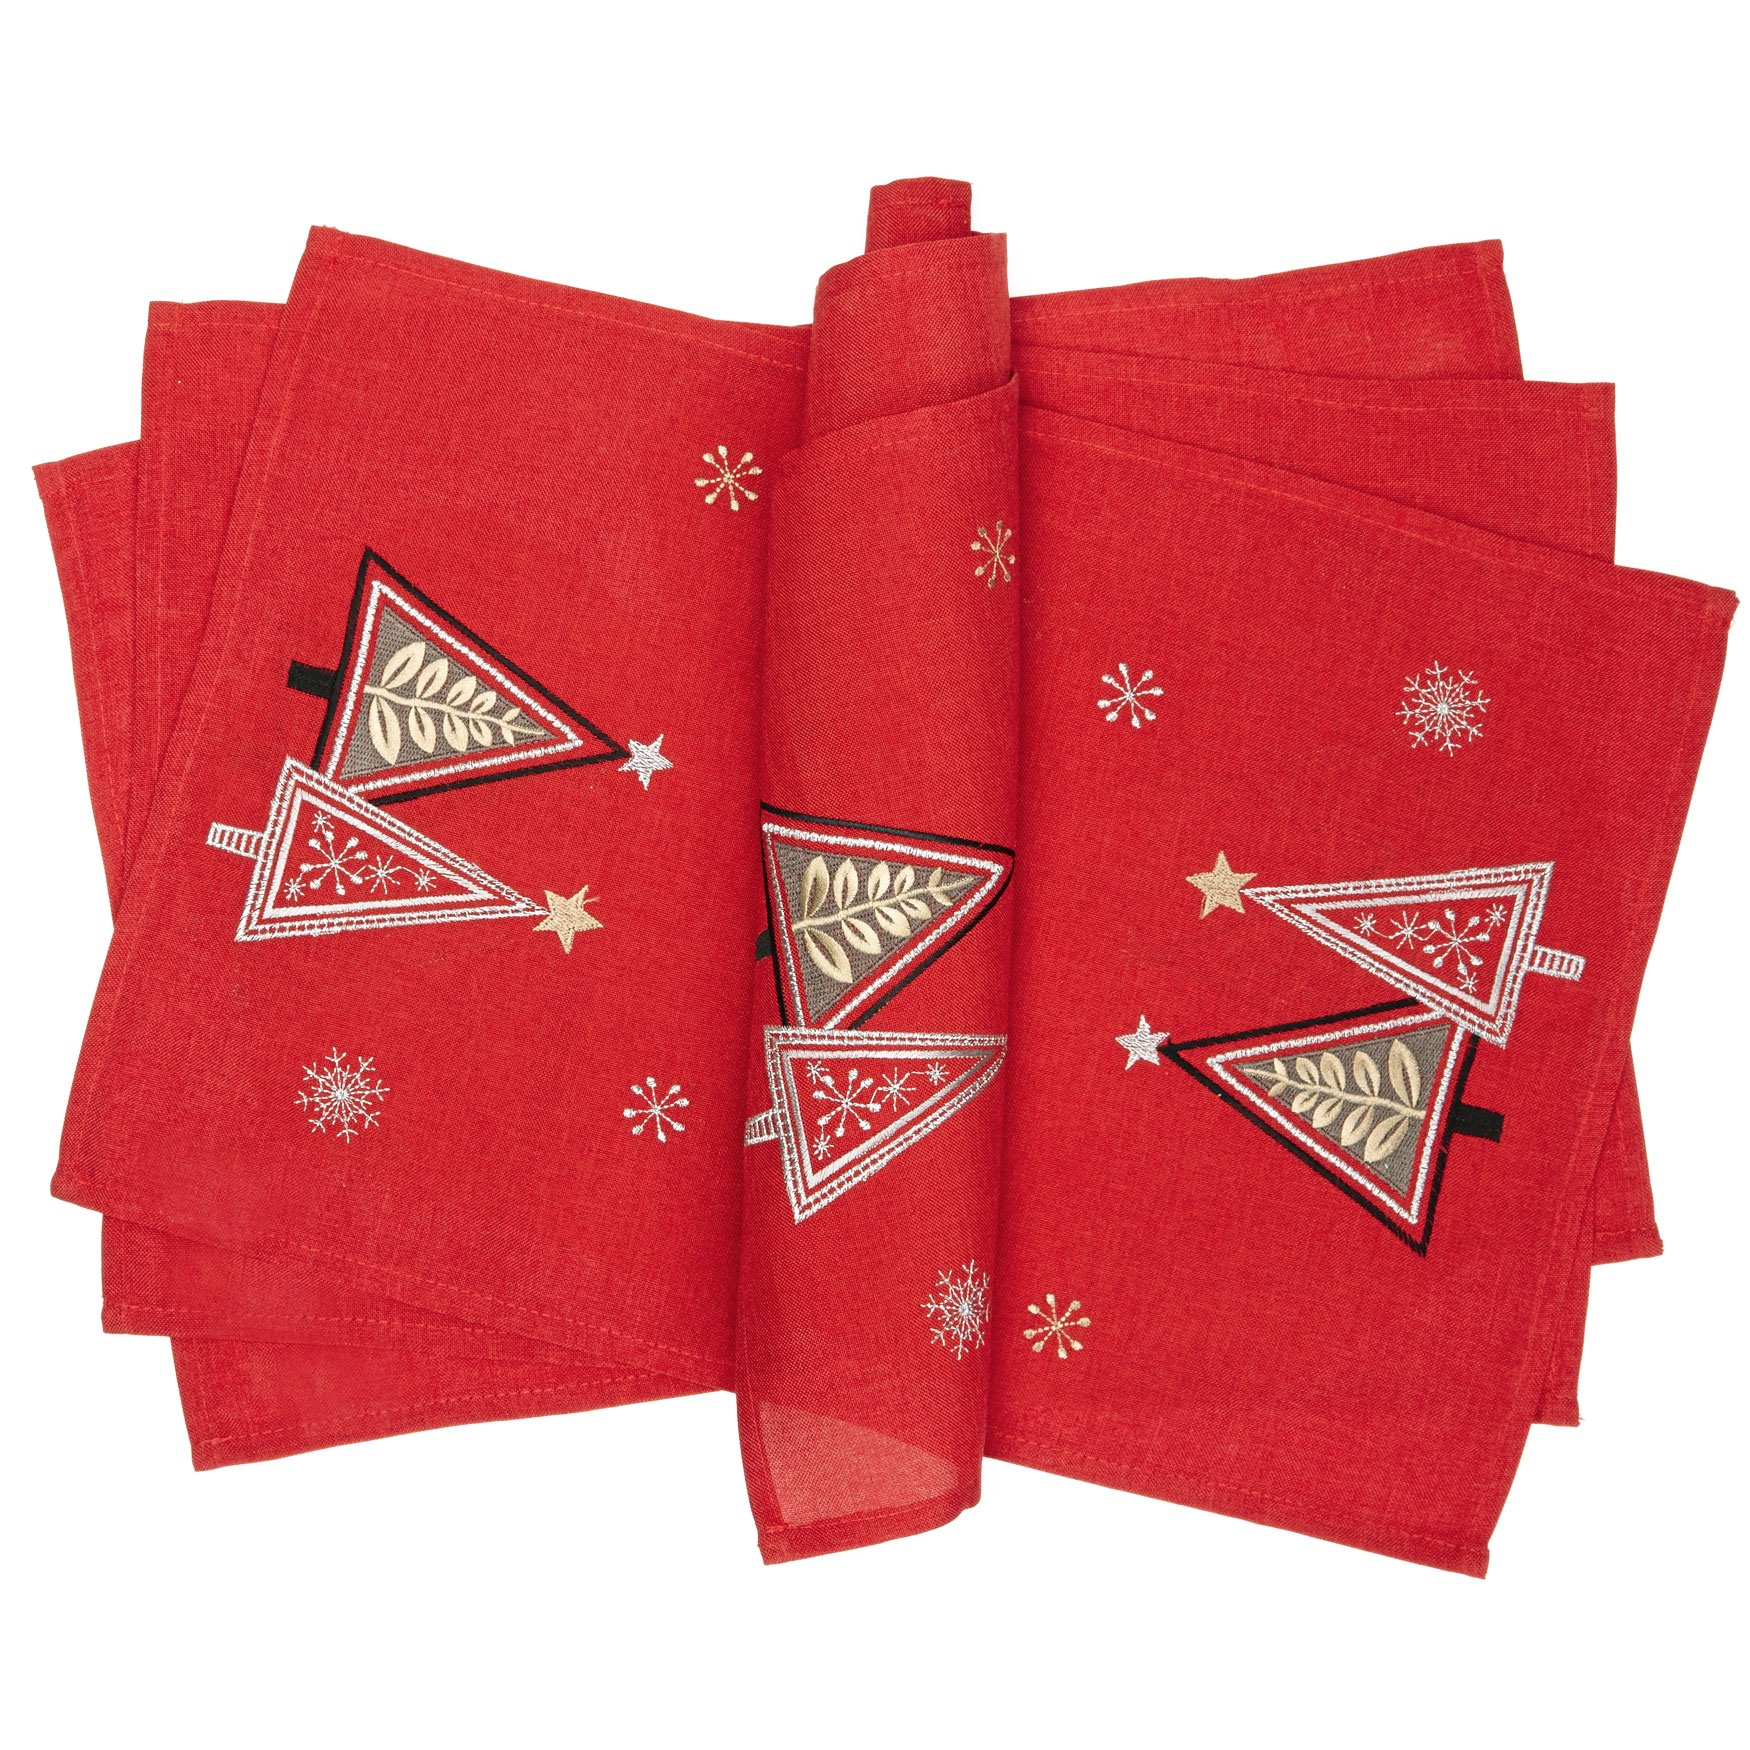 Embroidered Christmas Placemats, Set of 4, RED